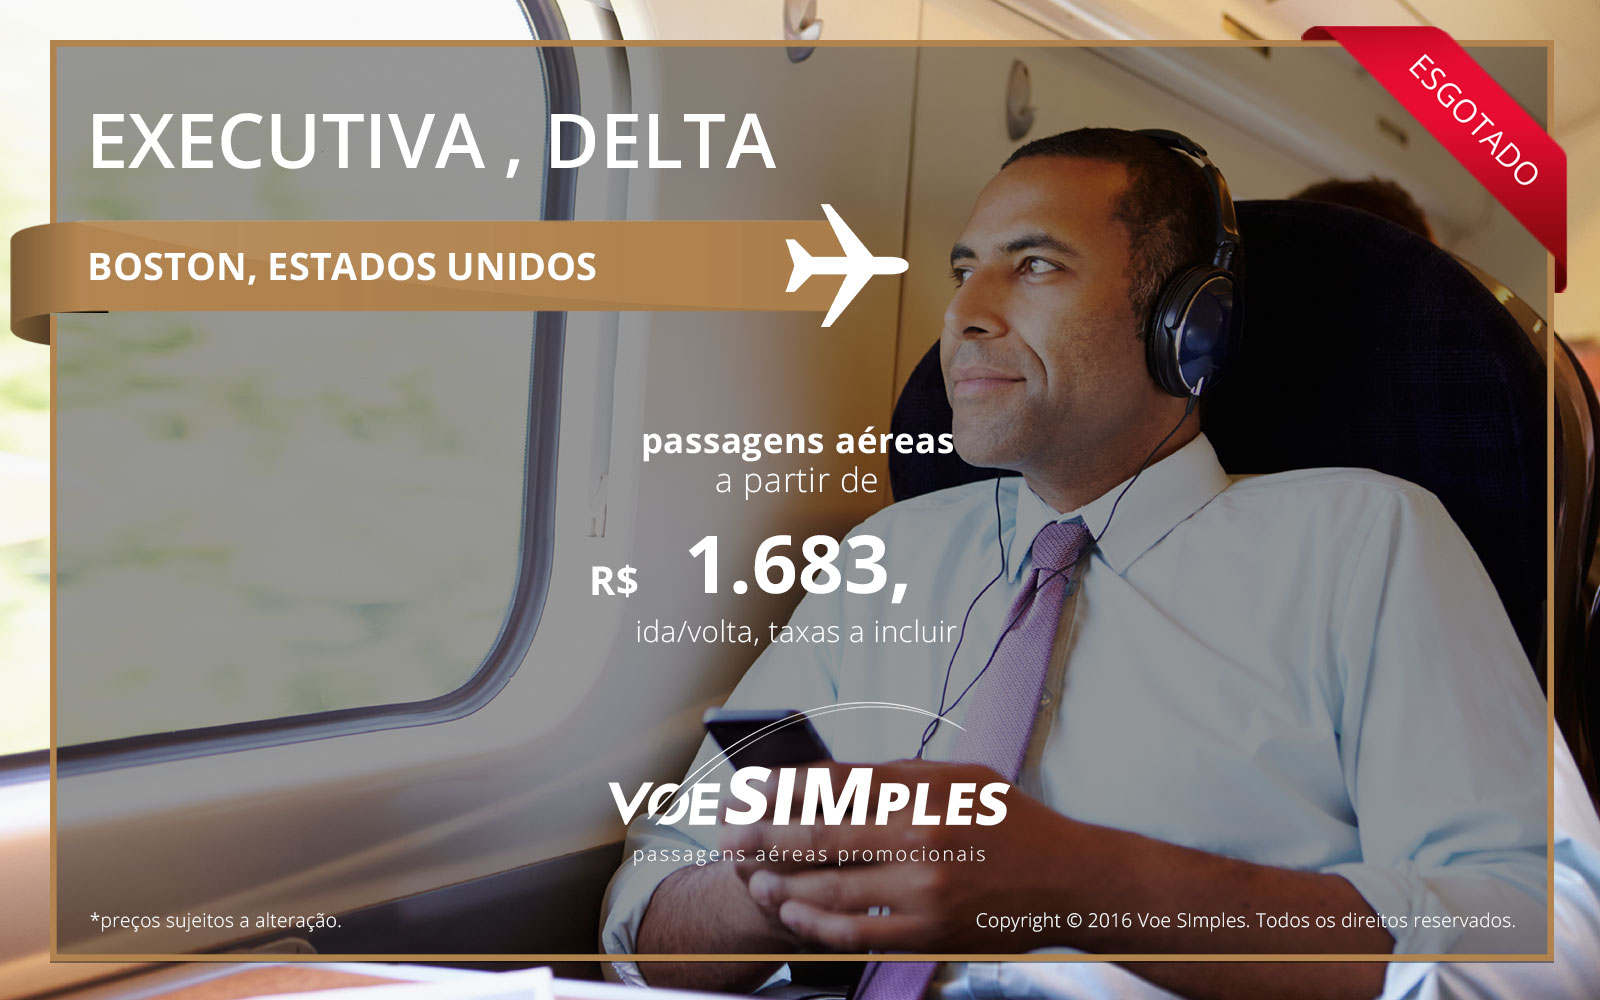 Passagem aérea Classe Executiva Delta Airlines para Boston